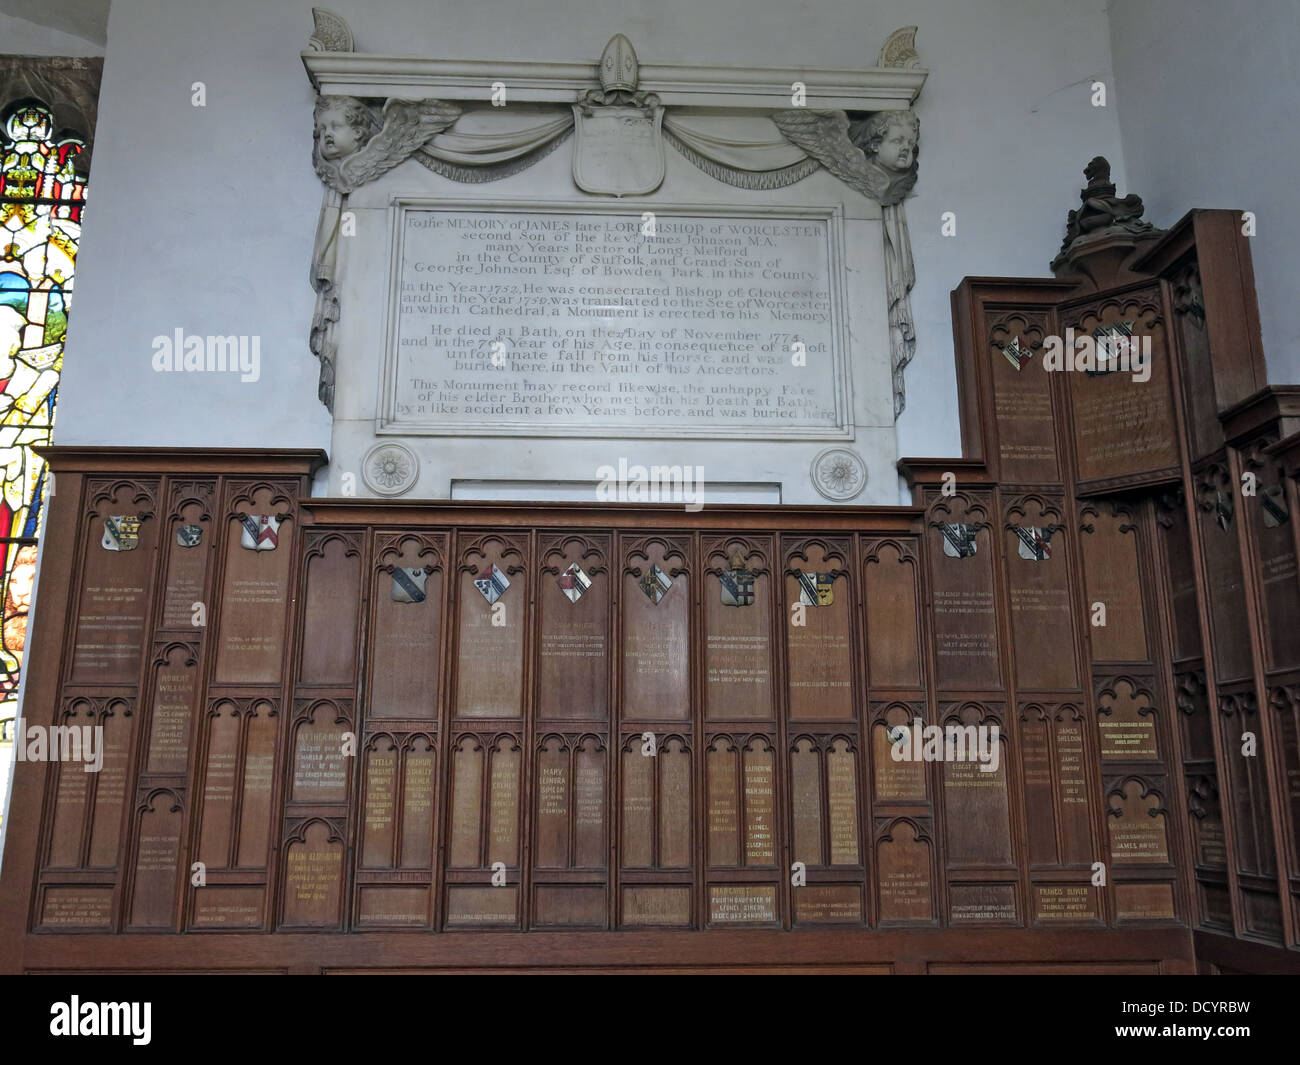 GoTonySmith,@HotpixUK,Tony,Smith,UK,GB,Great,Britain,United,Kingdom,English,British,England,problem,with,problem with,issue with,Buy Pictures of,Buy Images Of,Images of,Stock Images,Tony Smith,United Kingdom,Great Britain,British Isles,HotpixUK,Wiltshire,Christian,religion,church,historic,village,chapel